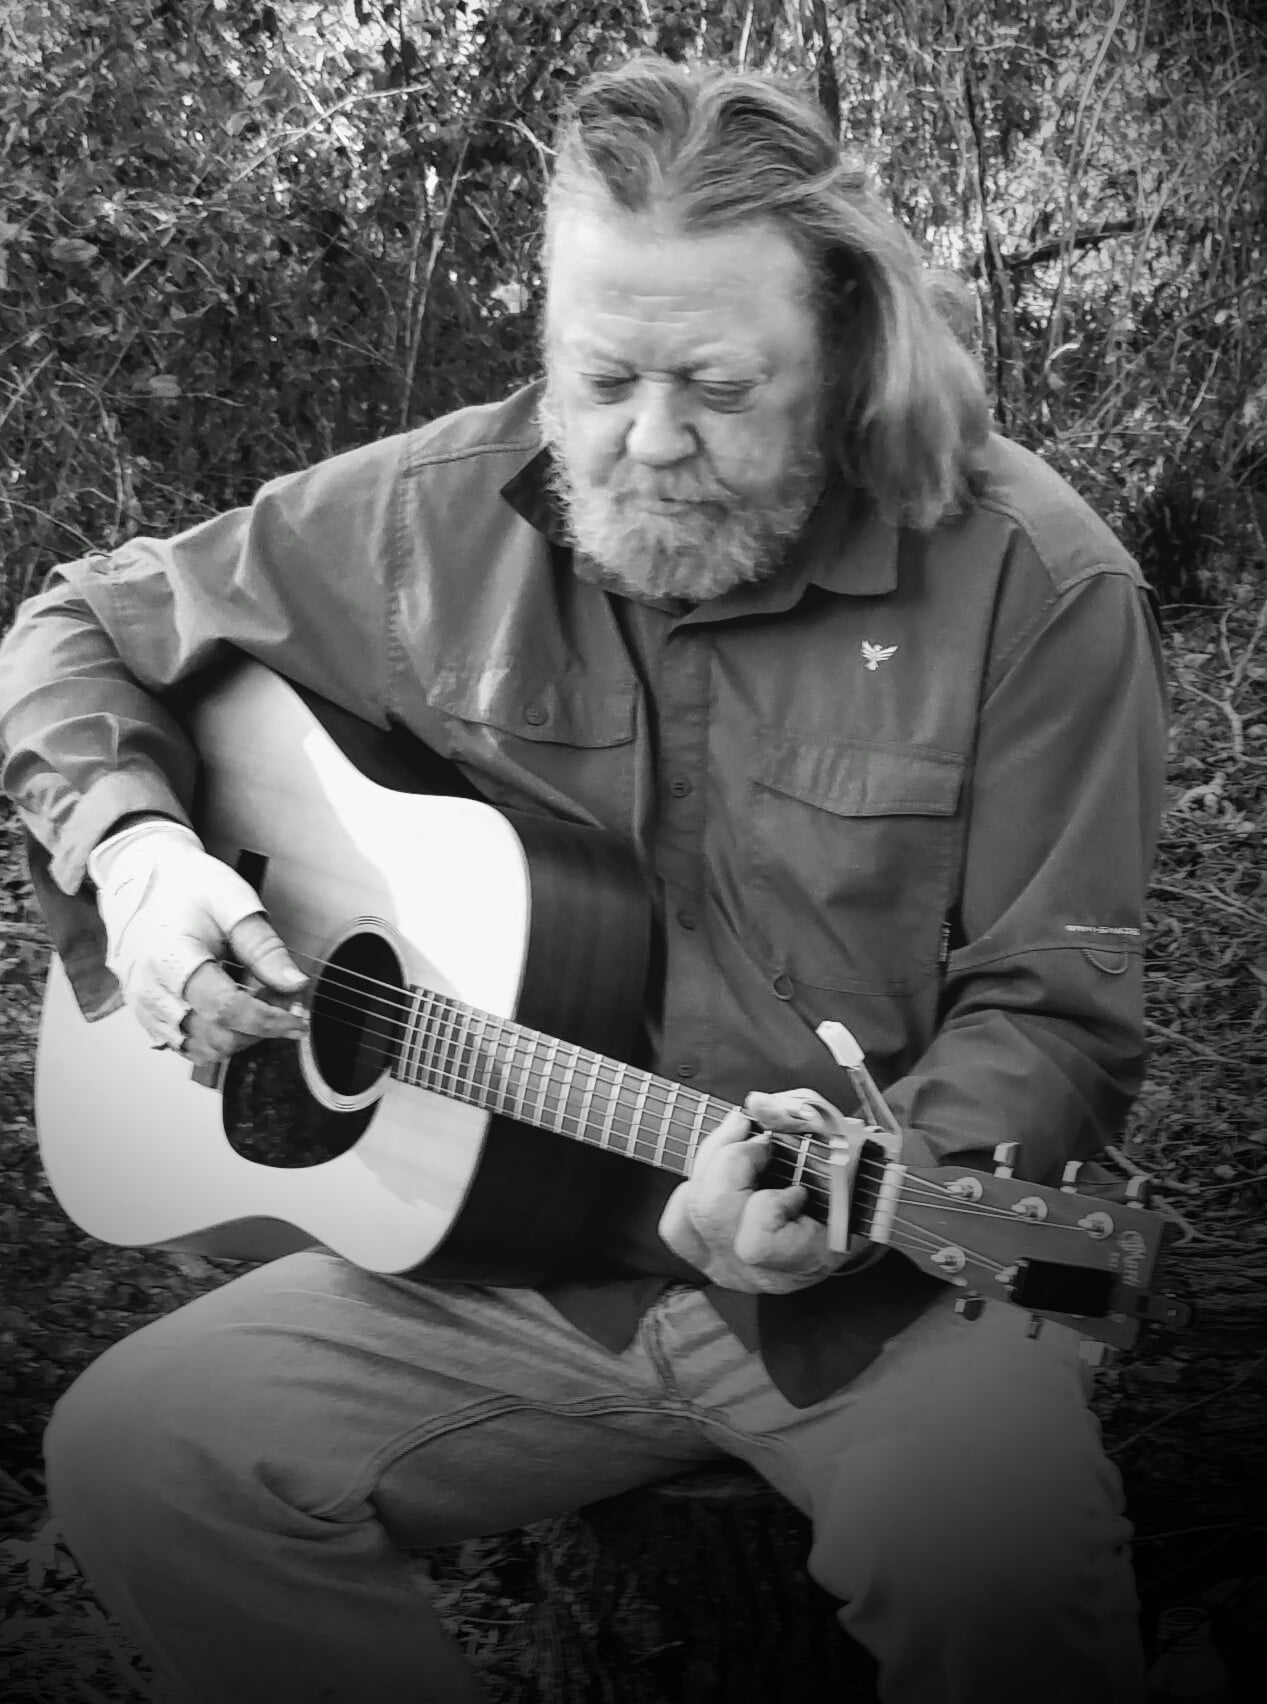 Live Music featuring Paul Boyle at Eastpoint Beer Company